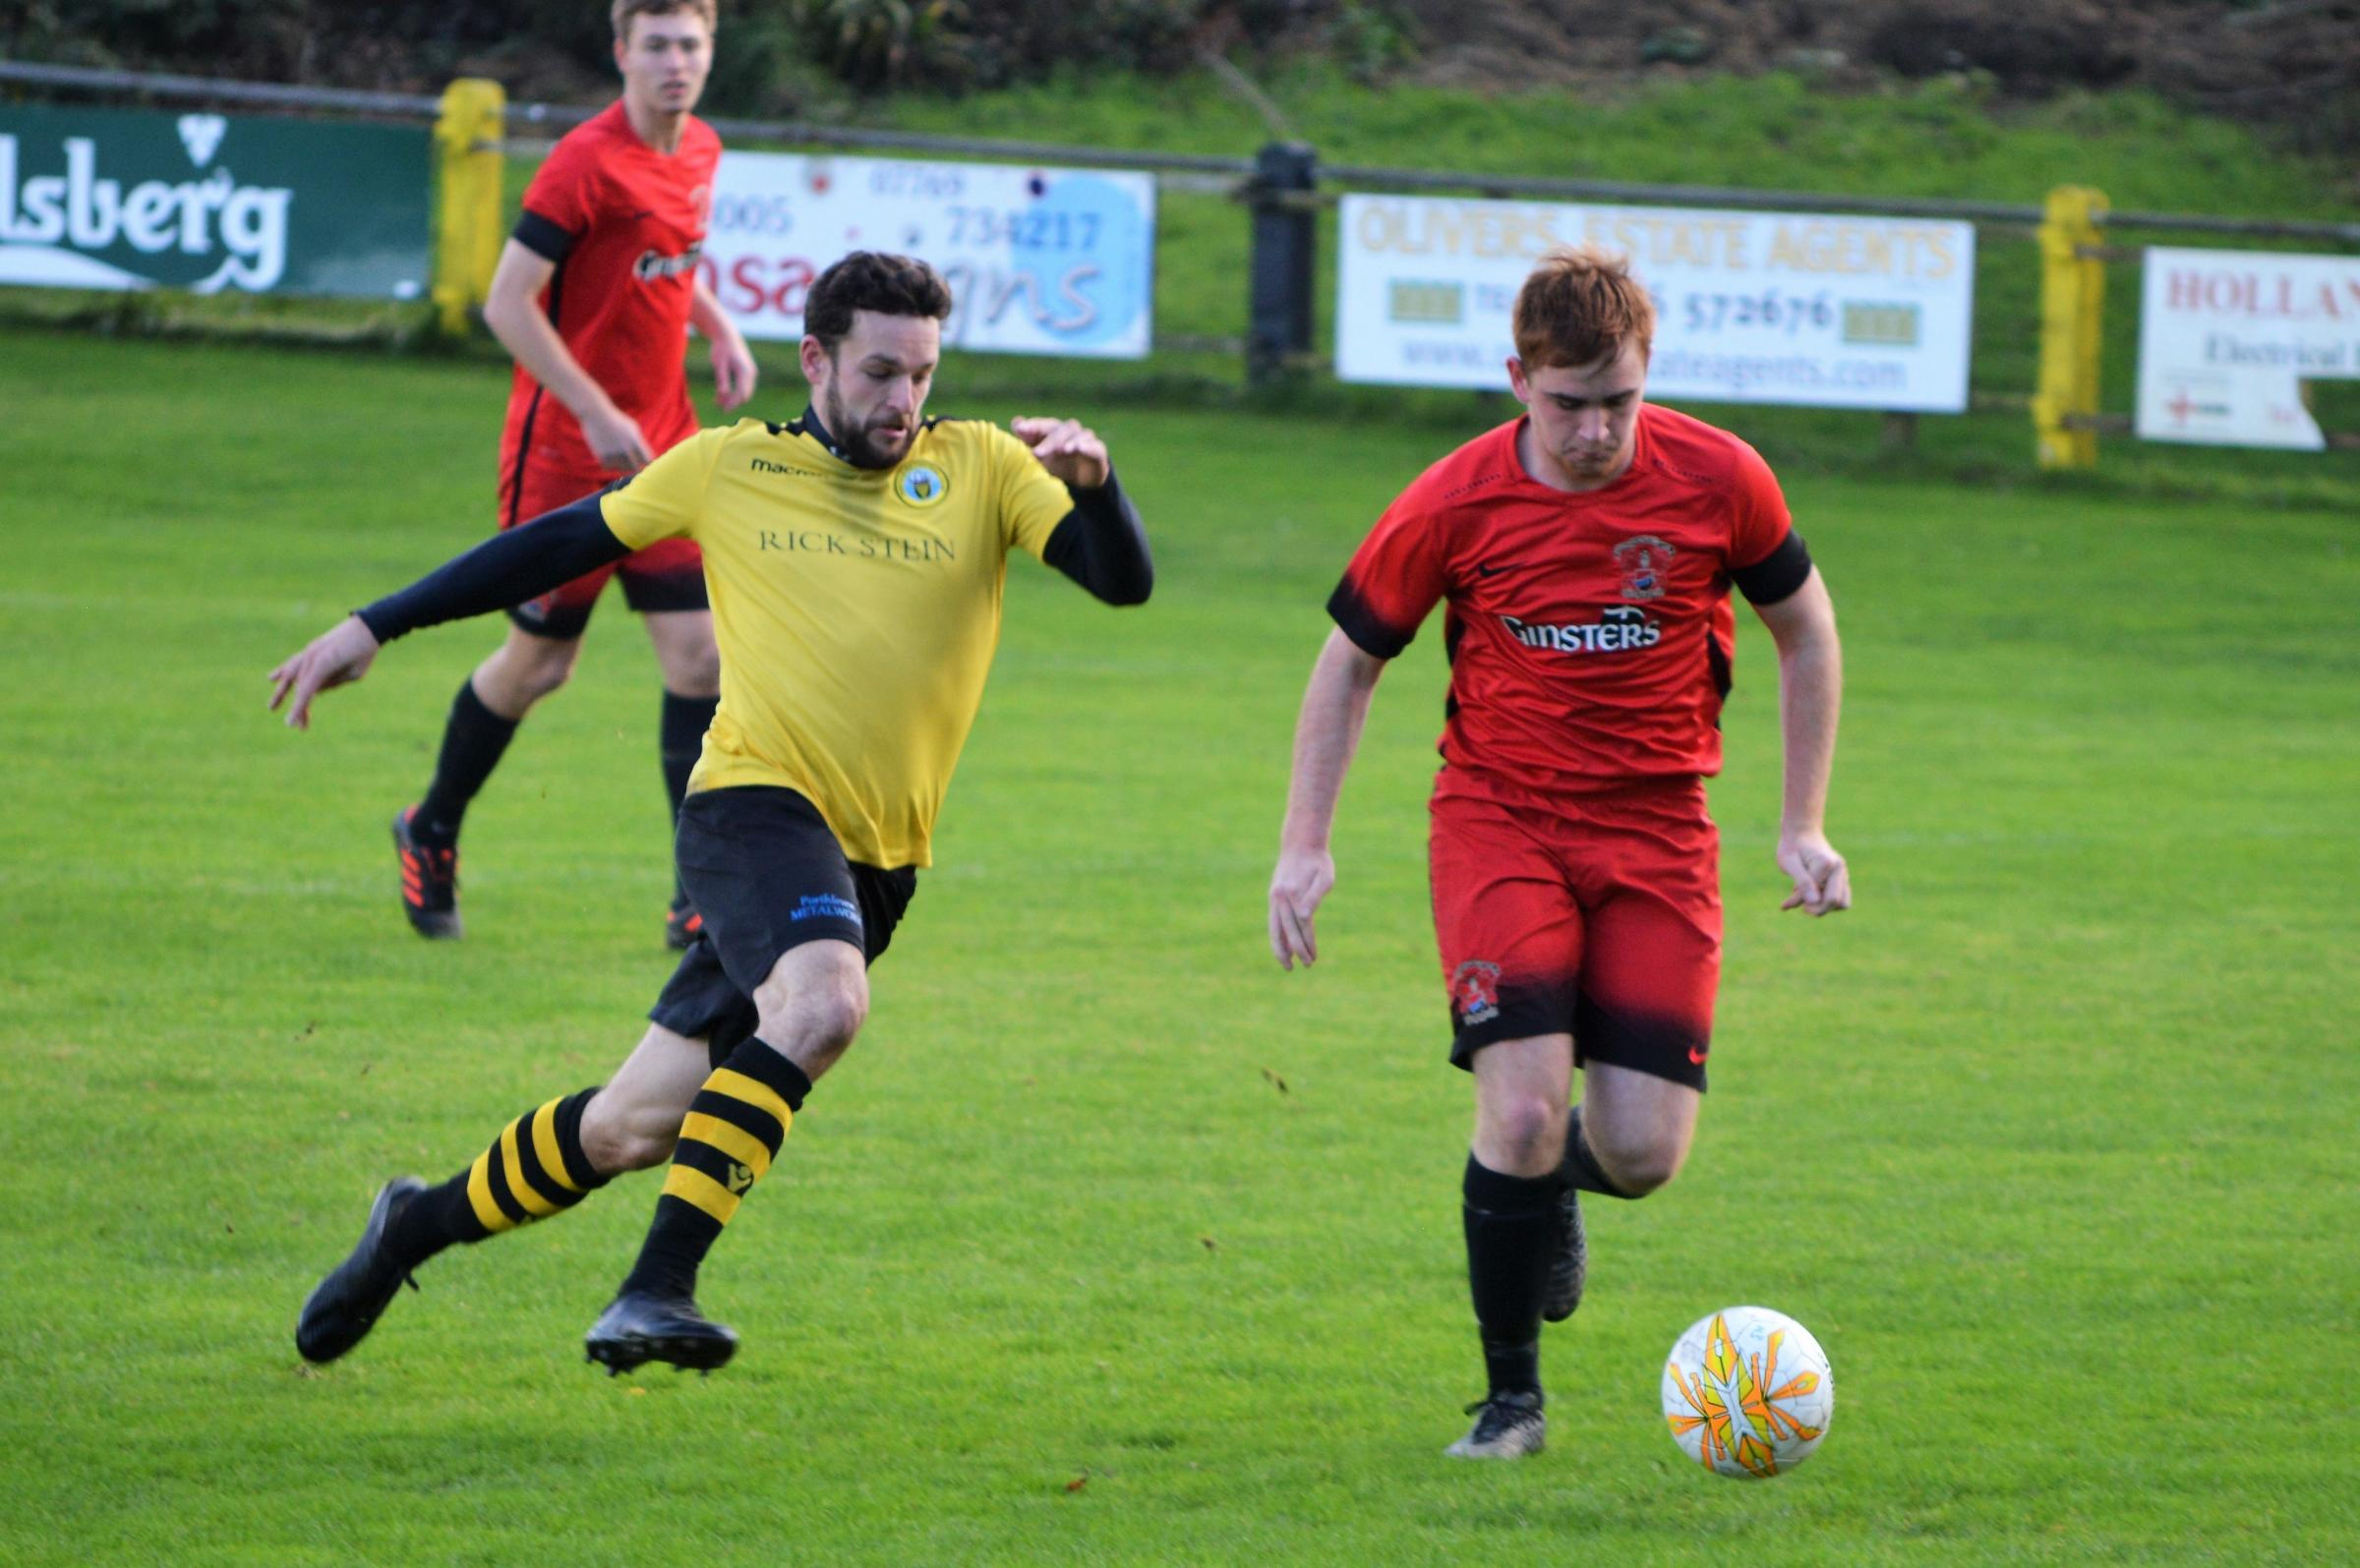 Porthleven will go five points clear at the top of the South West Peninsula League Division 1 West if they beat Liskeard on Saturday